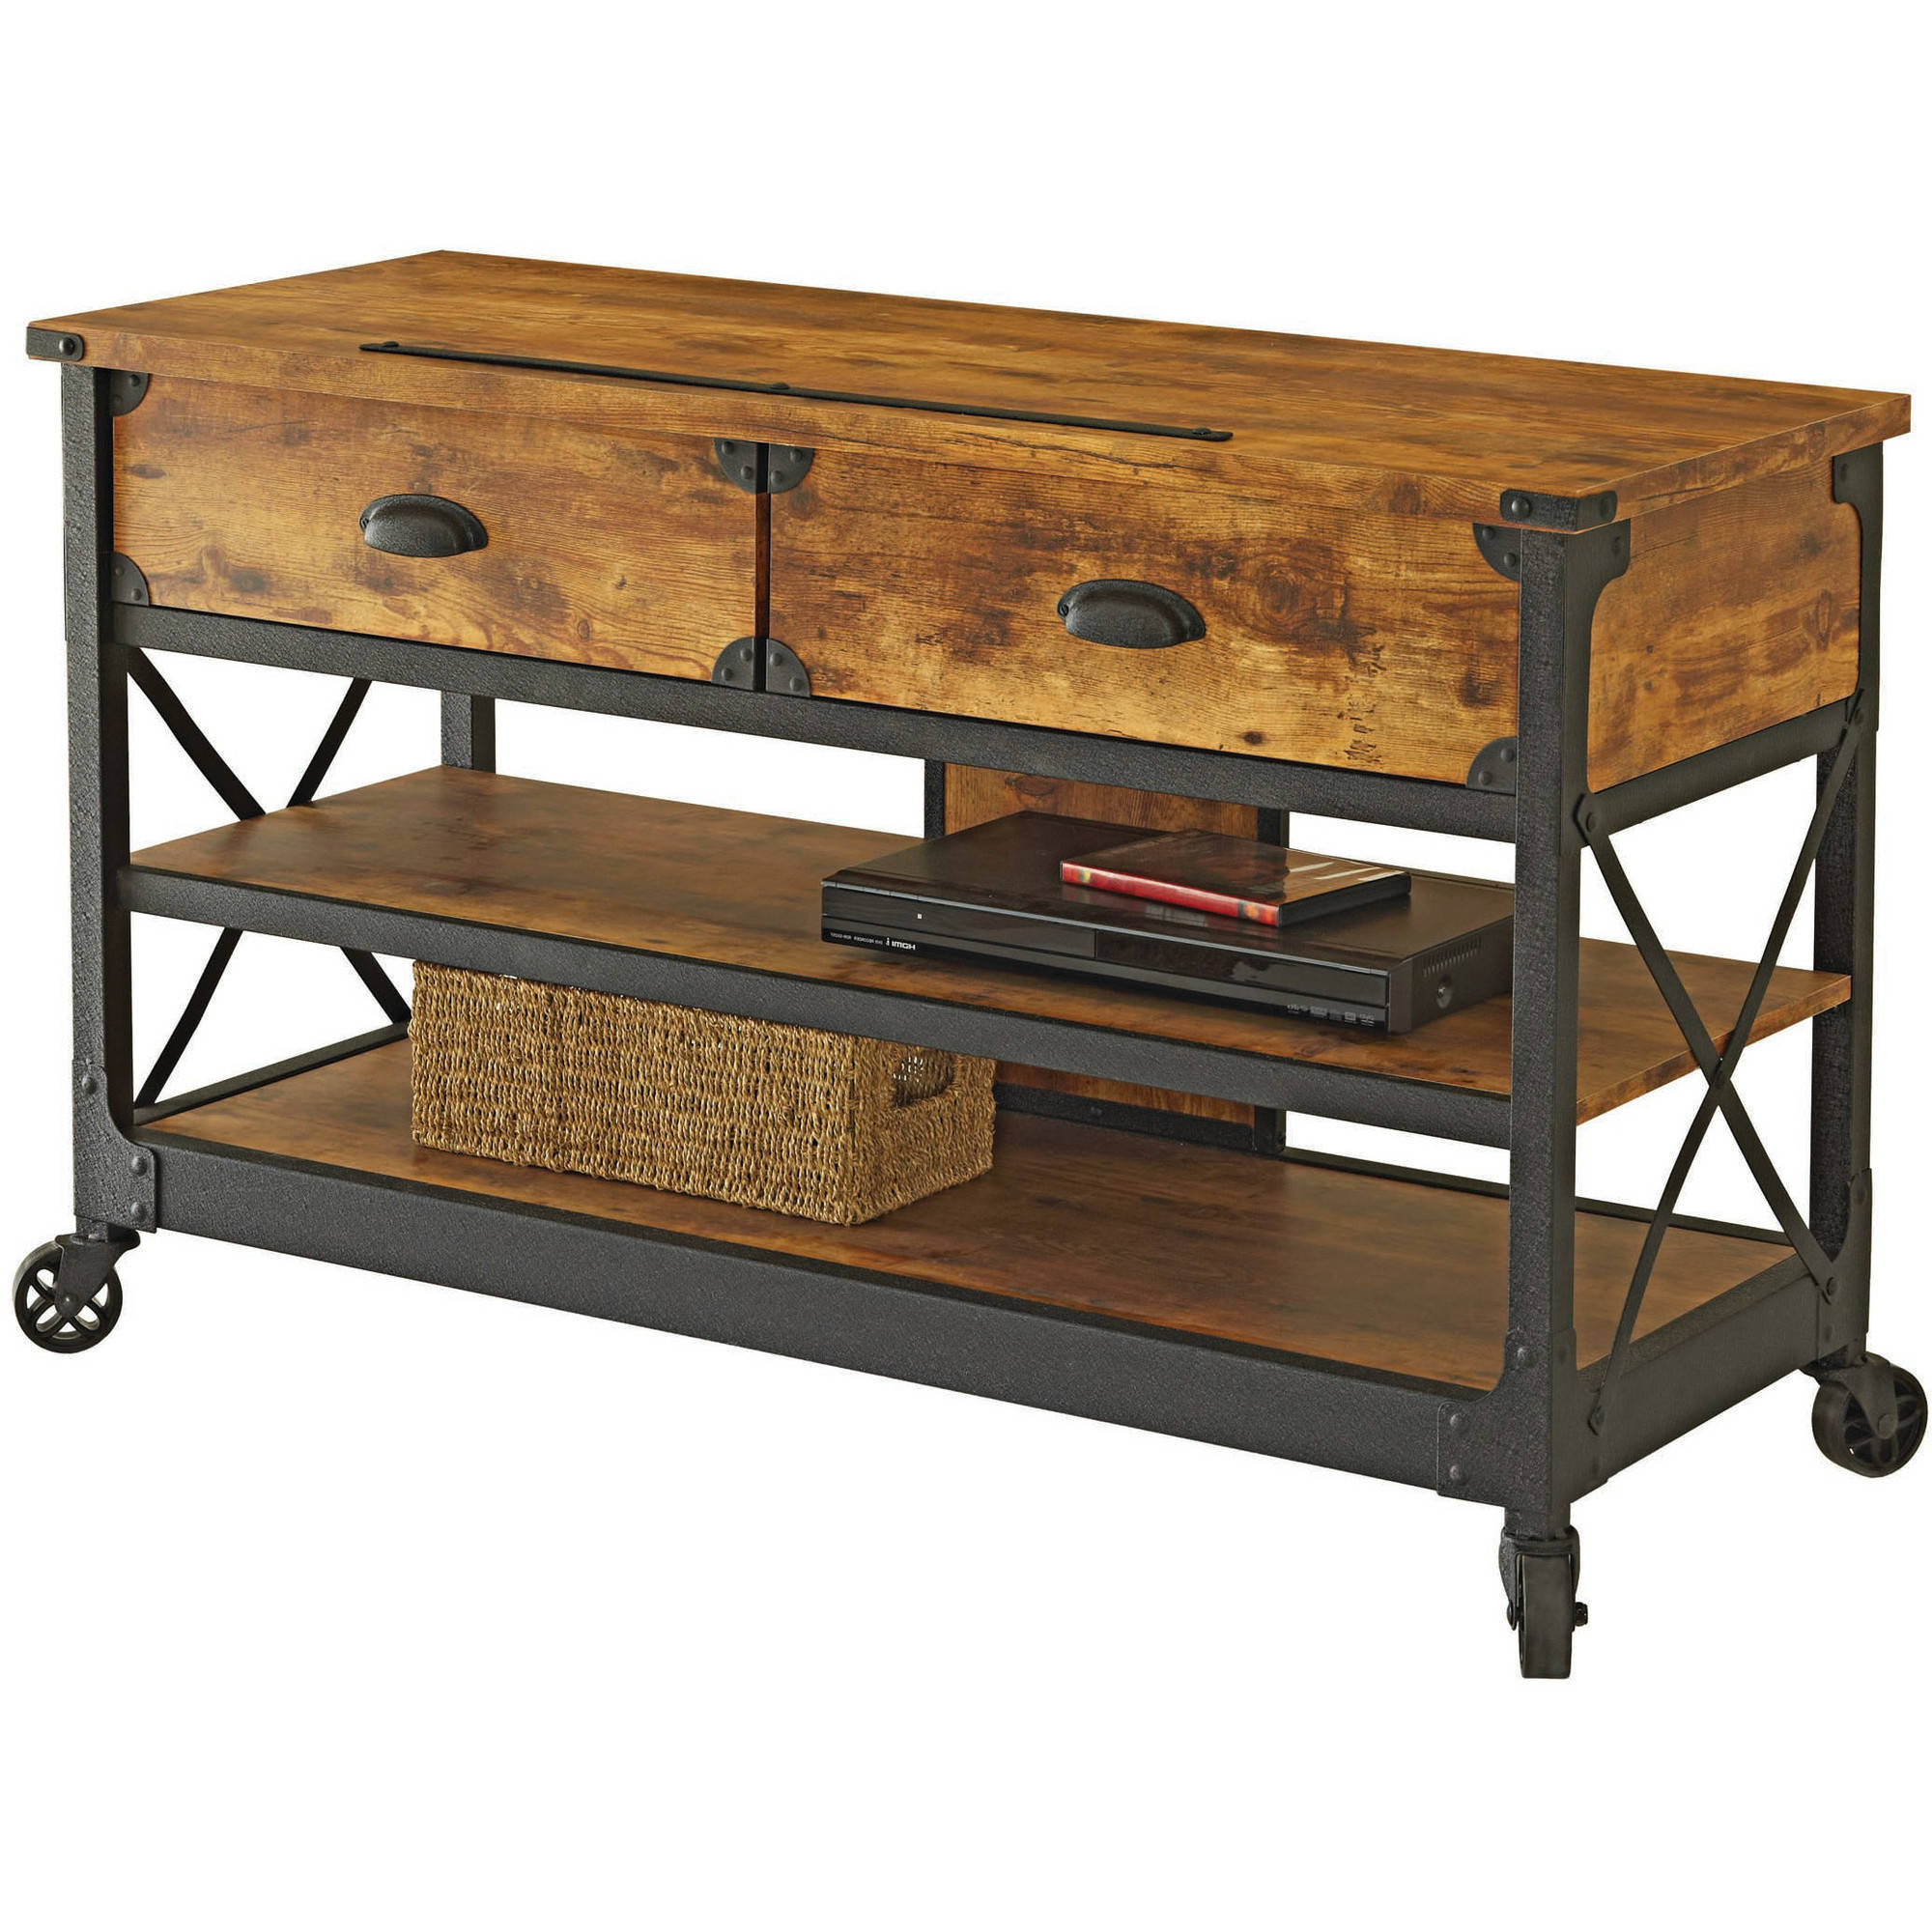 Famous Better Homes & Gardens Rustic Country Tv Stand For Tvs Up To 52 Within Tv Cabinets With Storage (View 13 of 20)